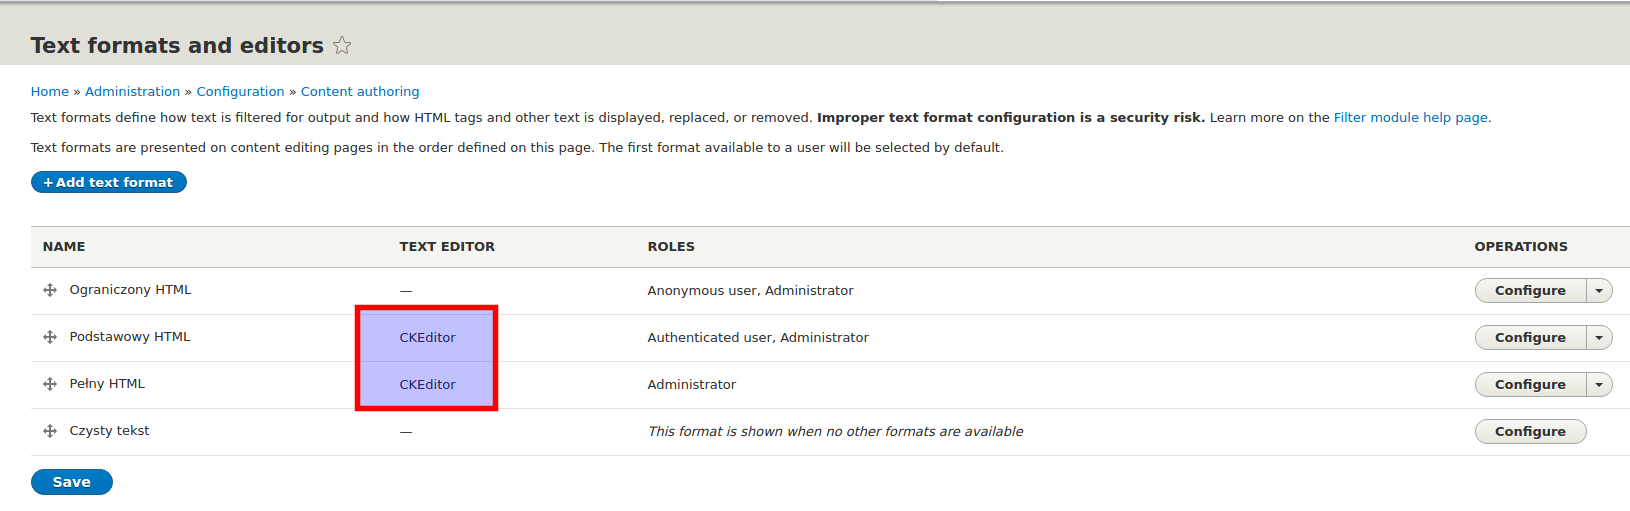 CKEditor in Drupal 8 Configuring new options pt  I